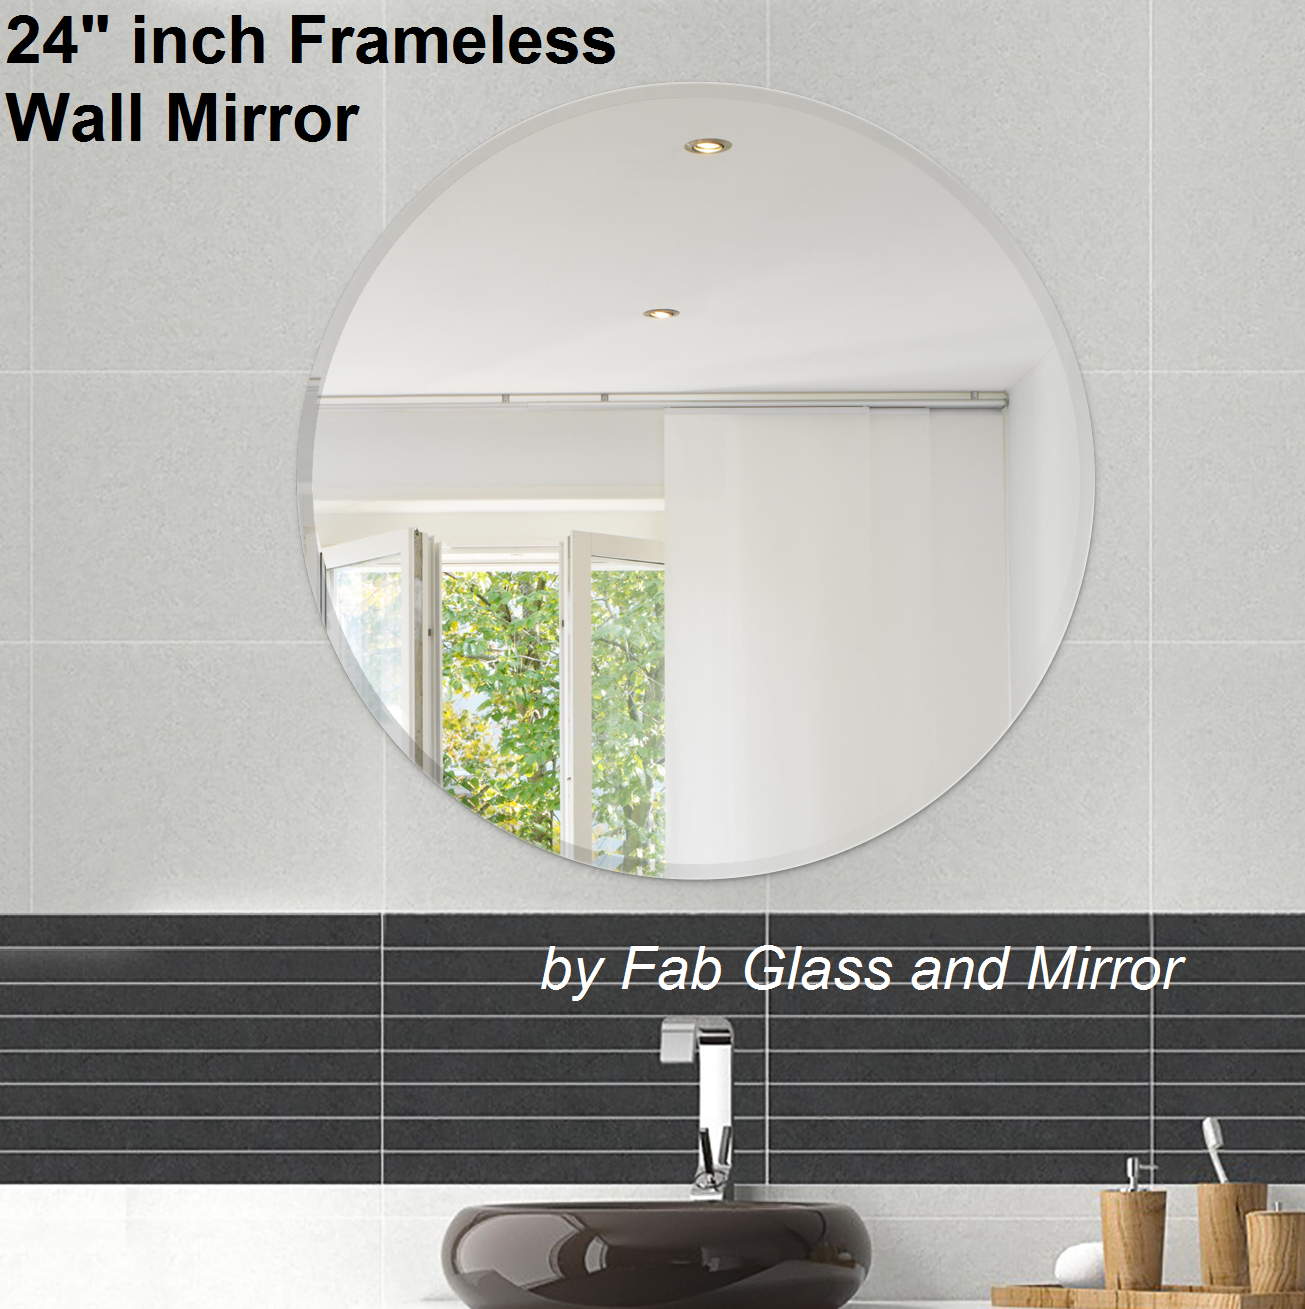 24 Inch Round Frame Less Wall Mirrors | Master Bathroom In Celeste Frameless Round Wall Mirrors (View 10 of 20)